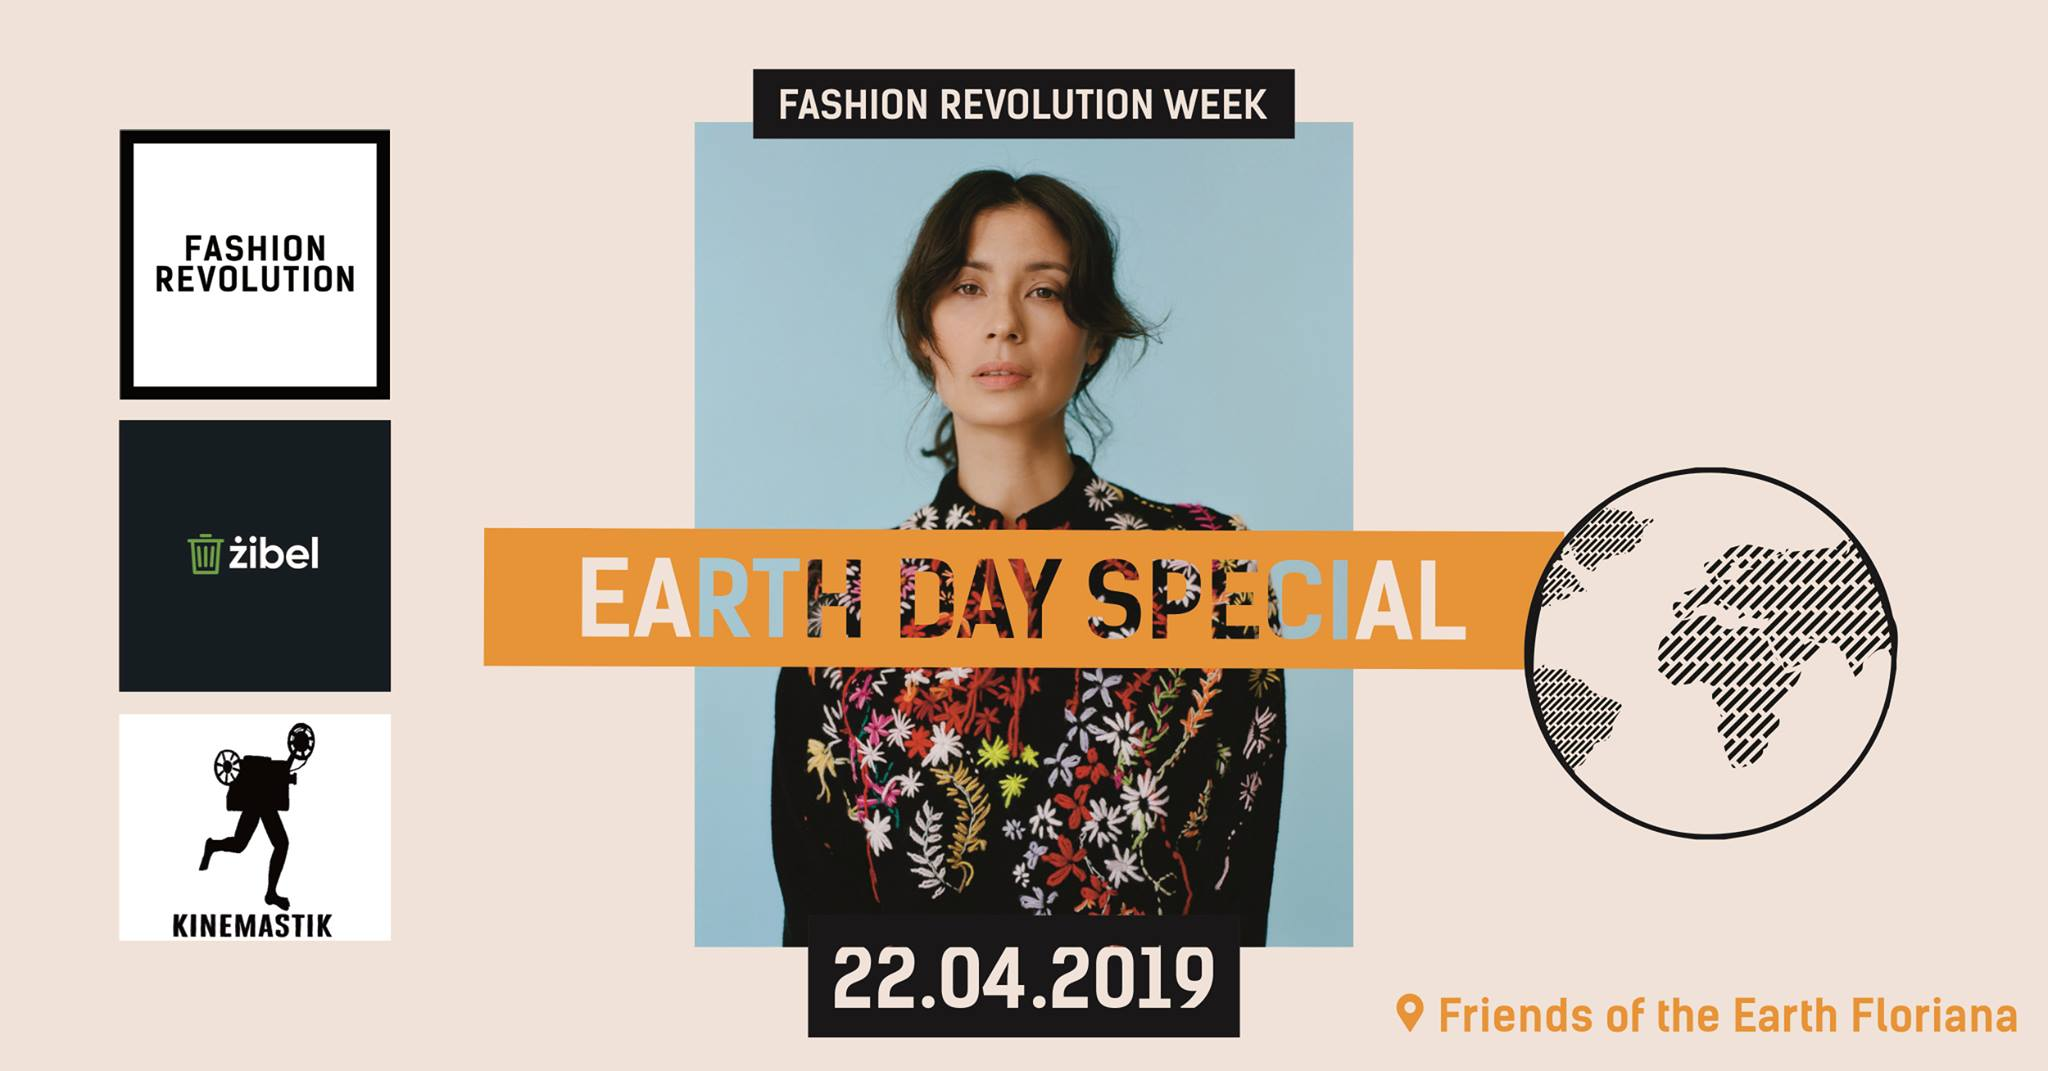 Fashion Revolution Week *Earth Day Special*